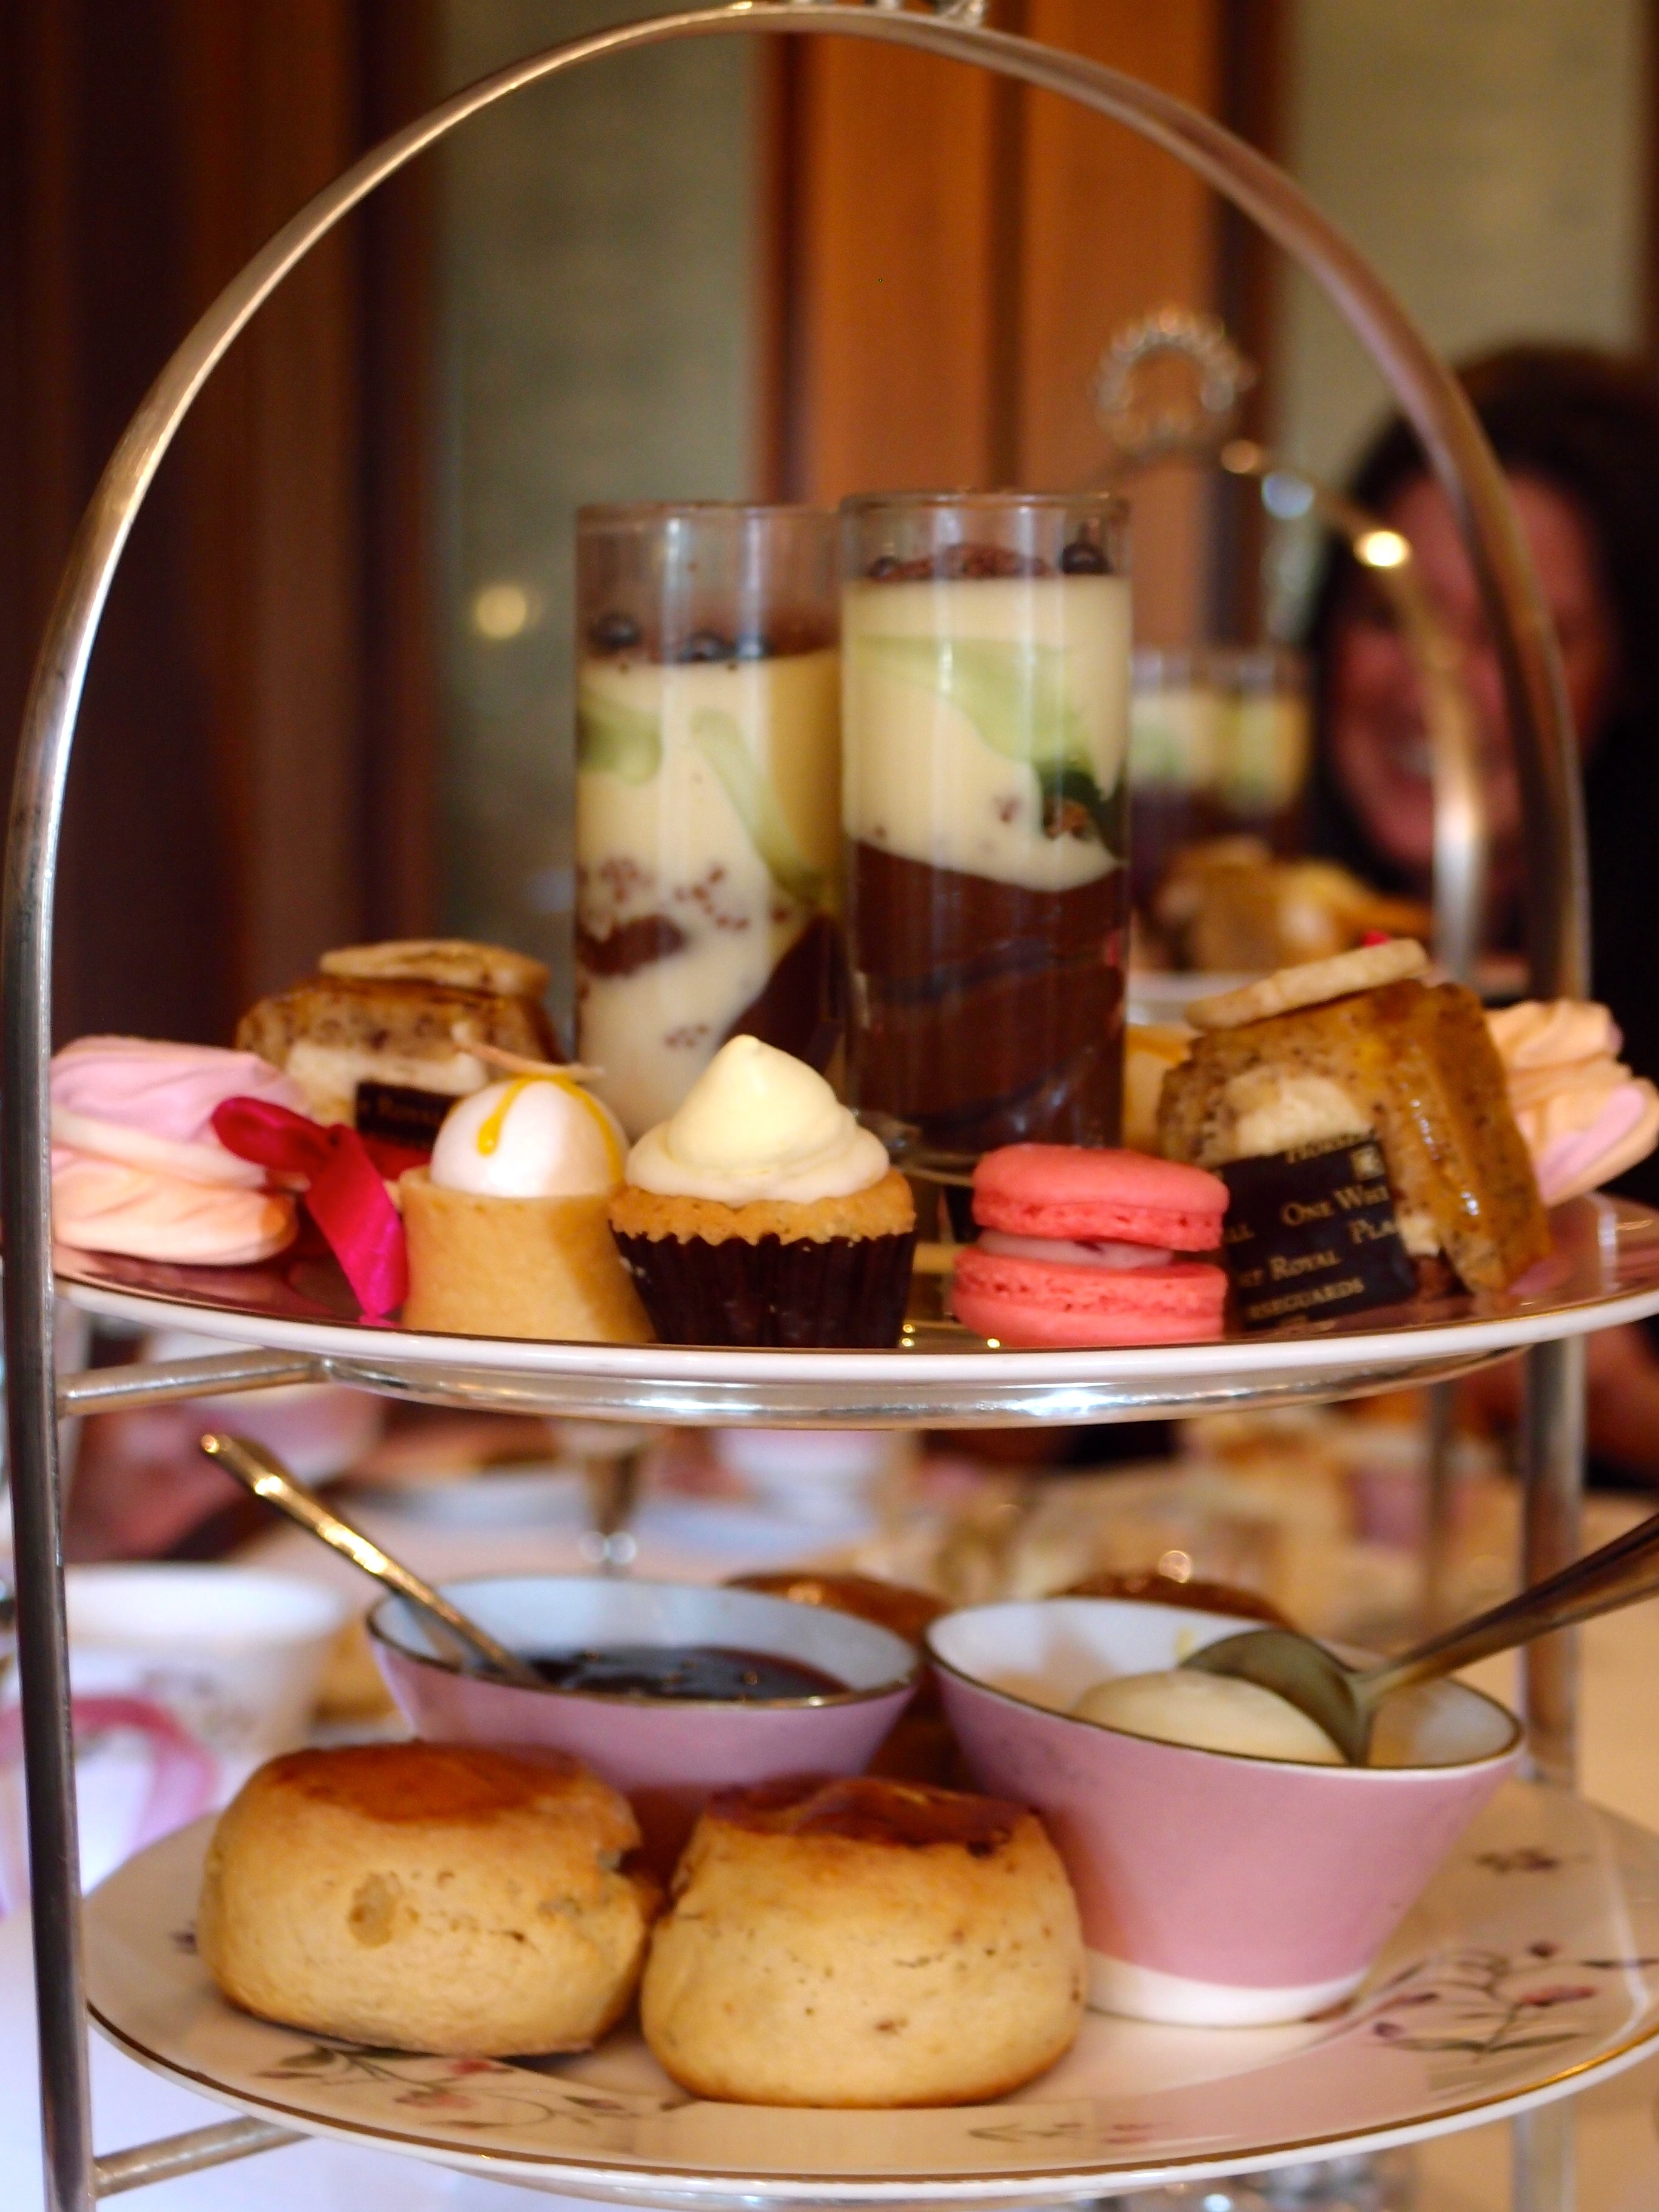 Afternoon Tea, Royal Horseguards Hotel, London